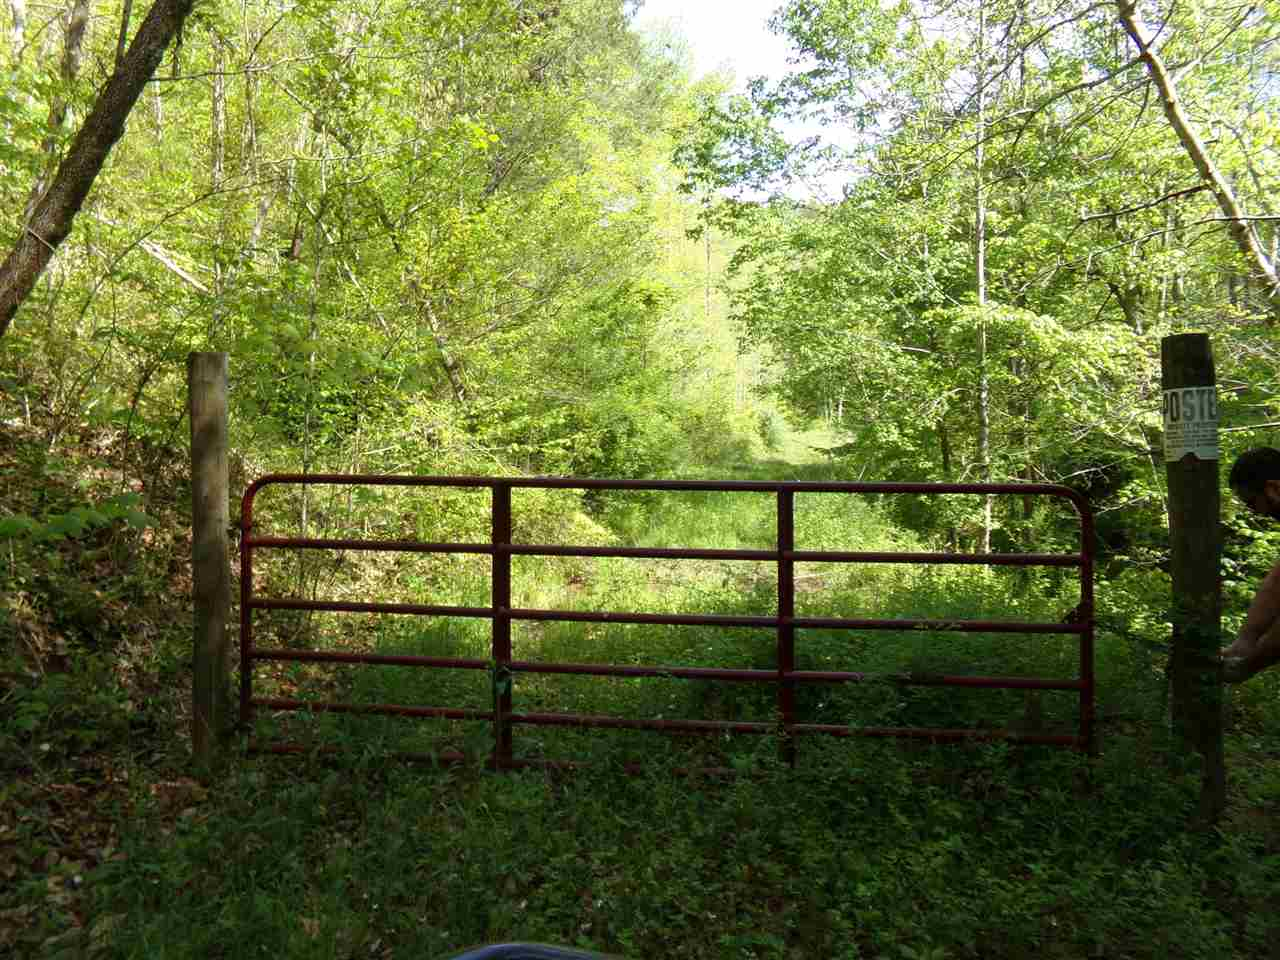 This is a great opportunity to own a large tract of land at an affordable price. 274 wooded acres with double paved road frontage that provides great hunting and access. Cleared cabin site with water and electric available. Theres 3-4 small food plots with stands and feeders, creek and pond site with multiple places to build. If you are looking at an affordable property for recreation or a place to retire, this is a must see.